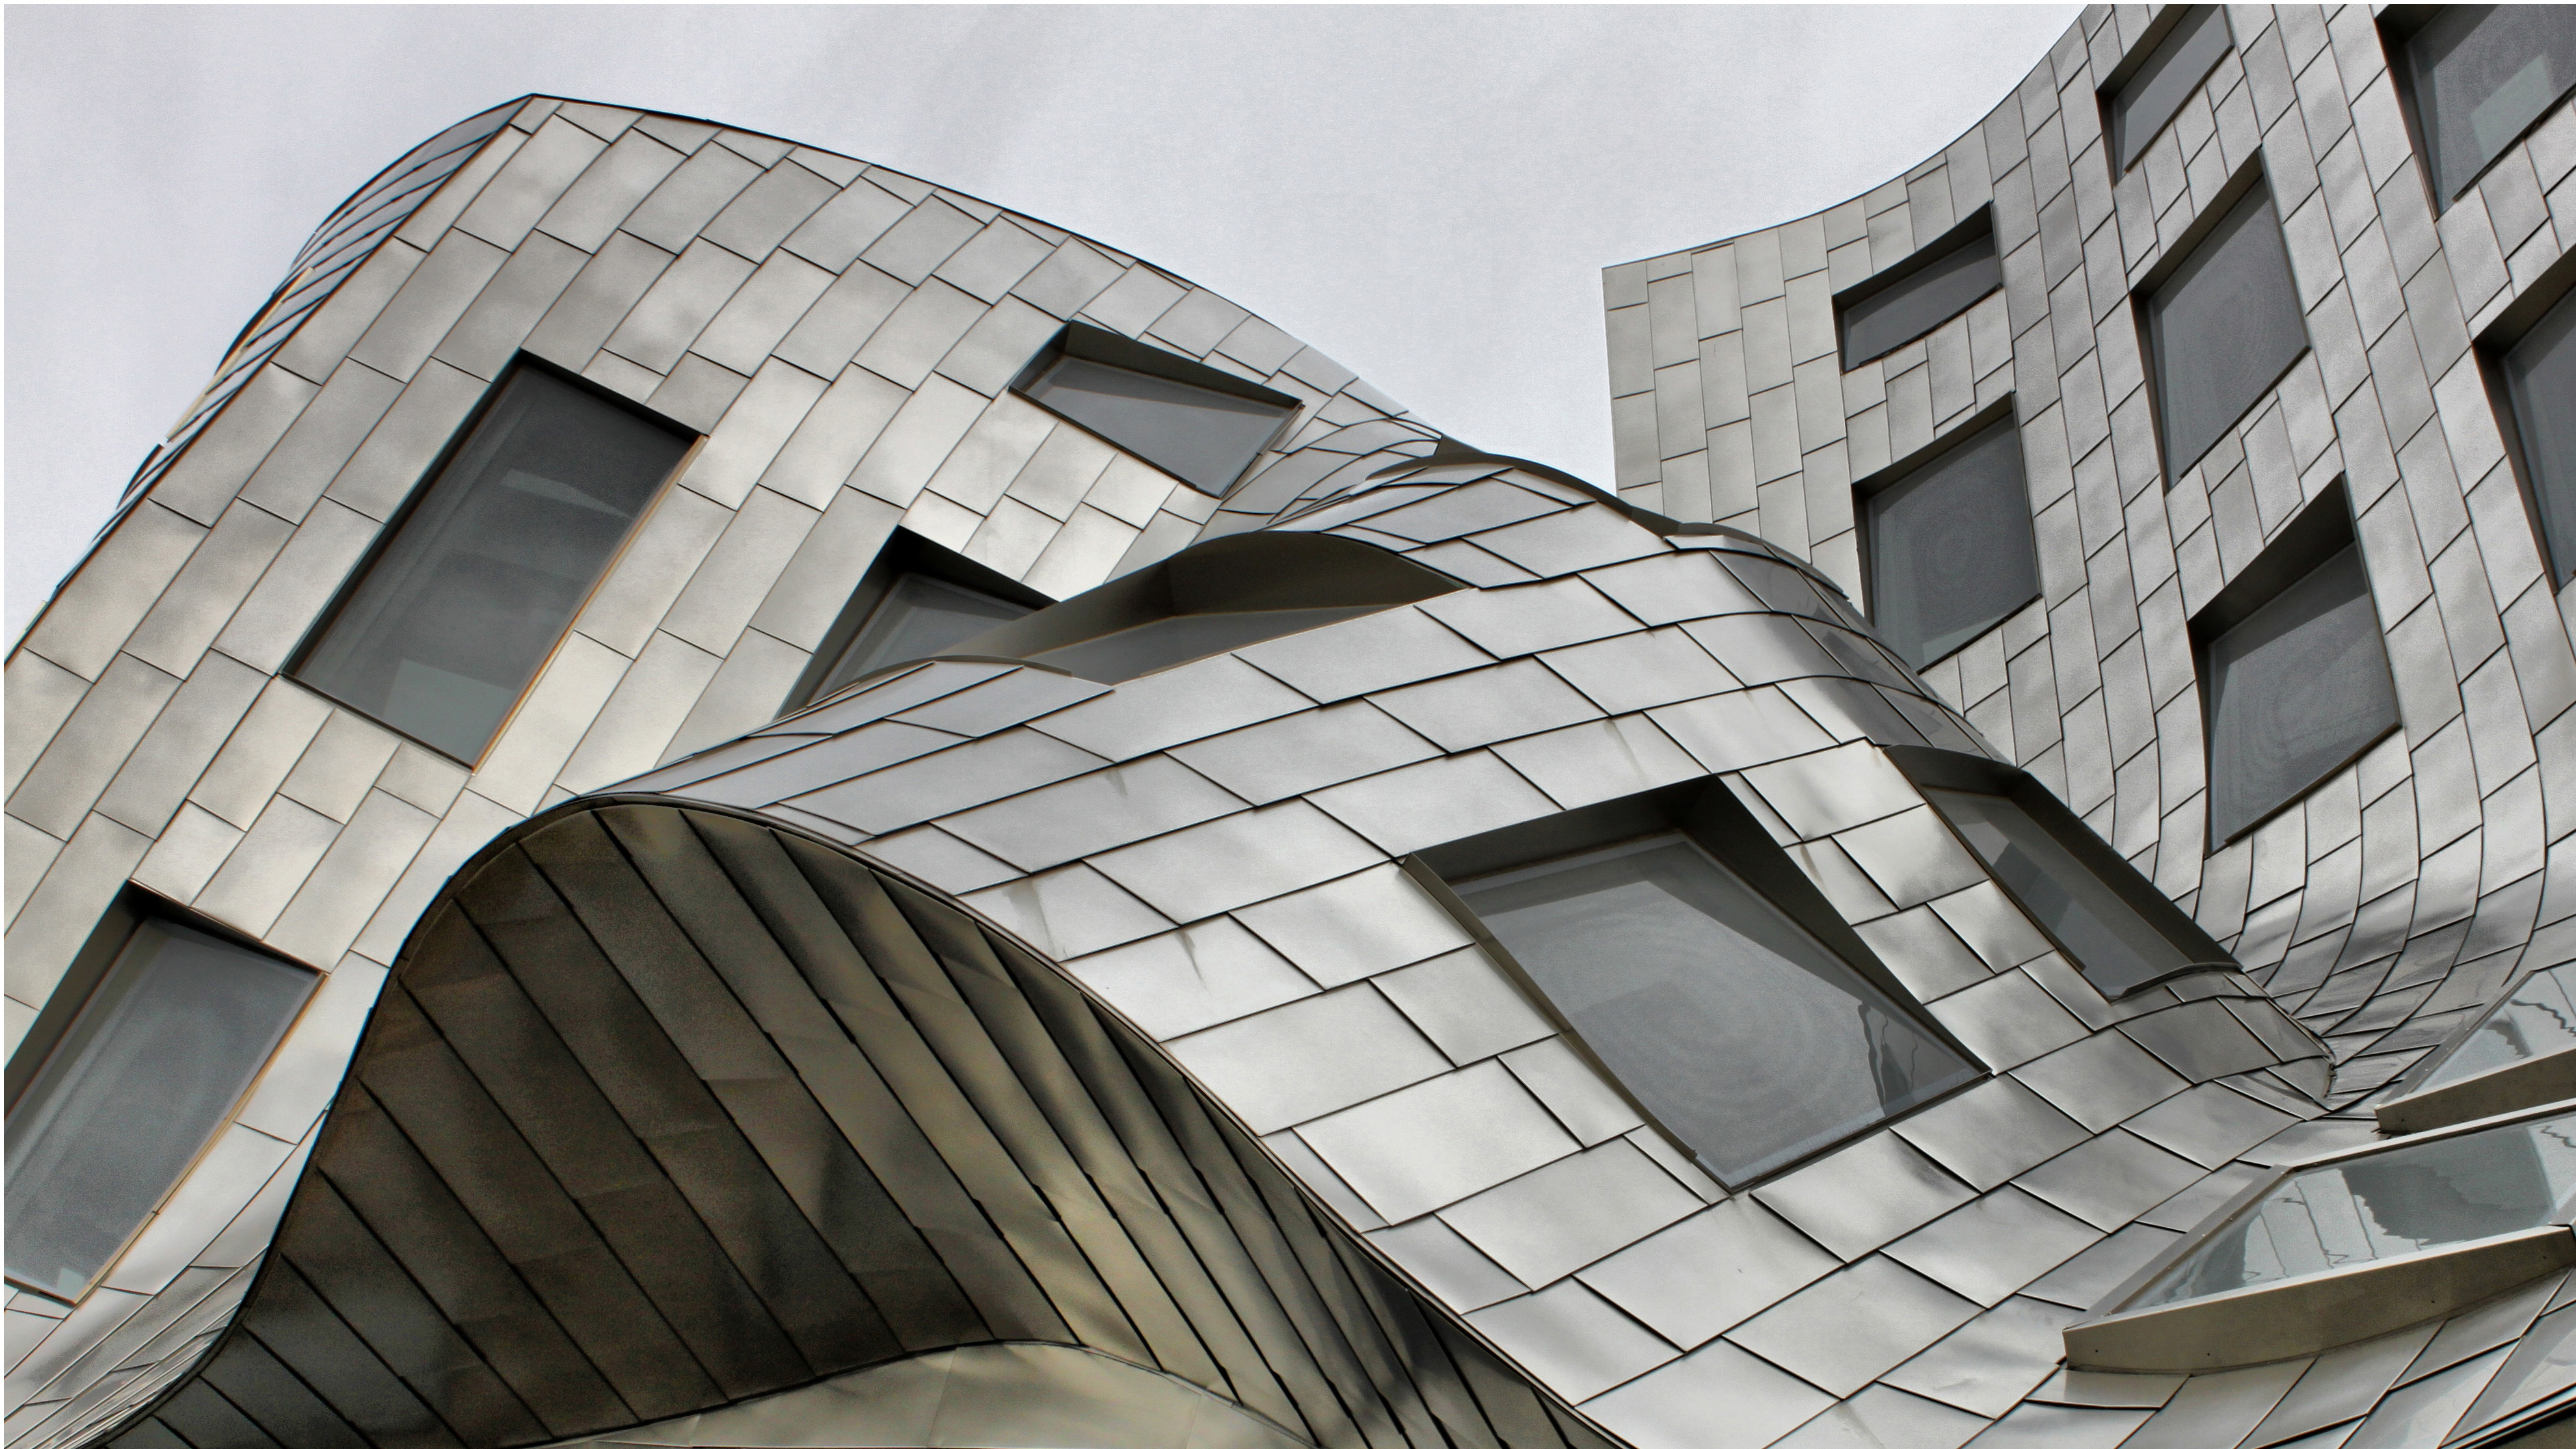 The Curious Anonymity of Architecture - Blogs | Planetizen